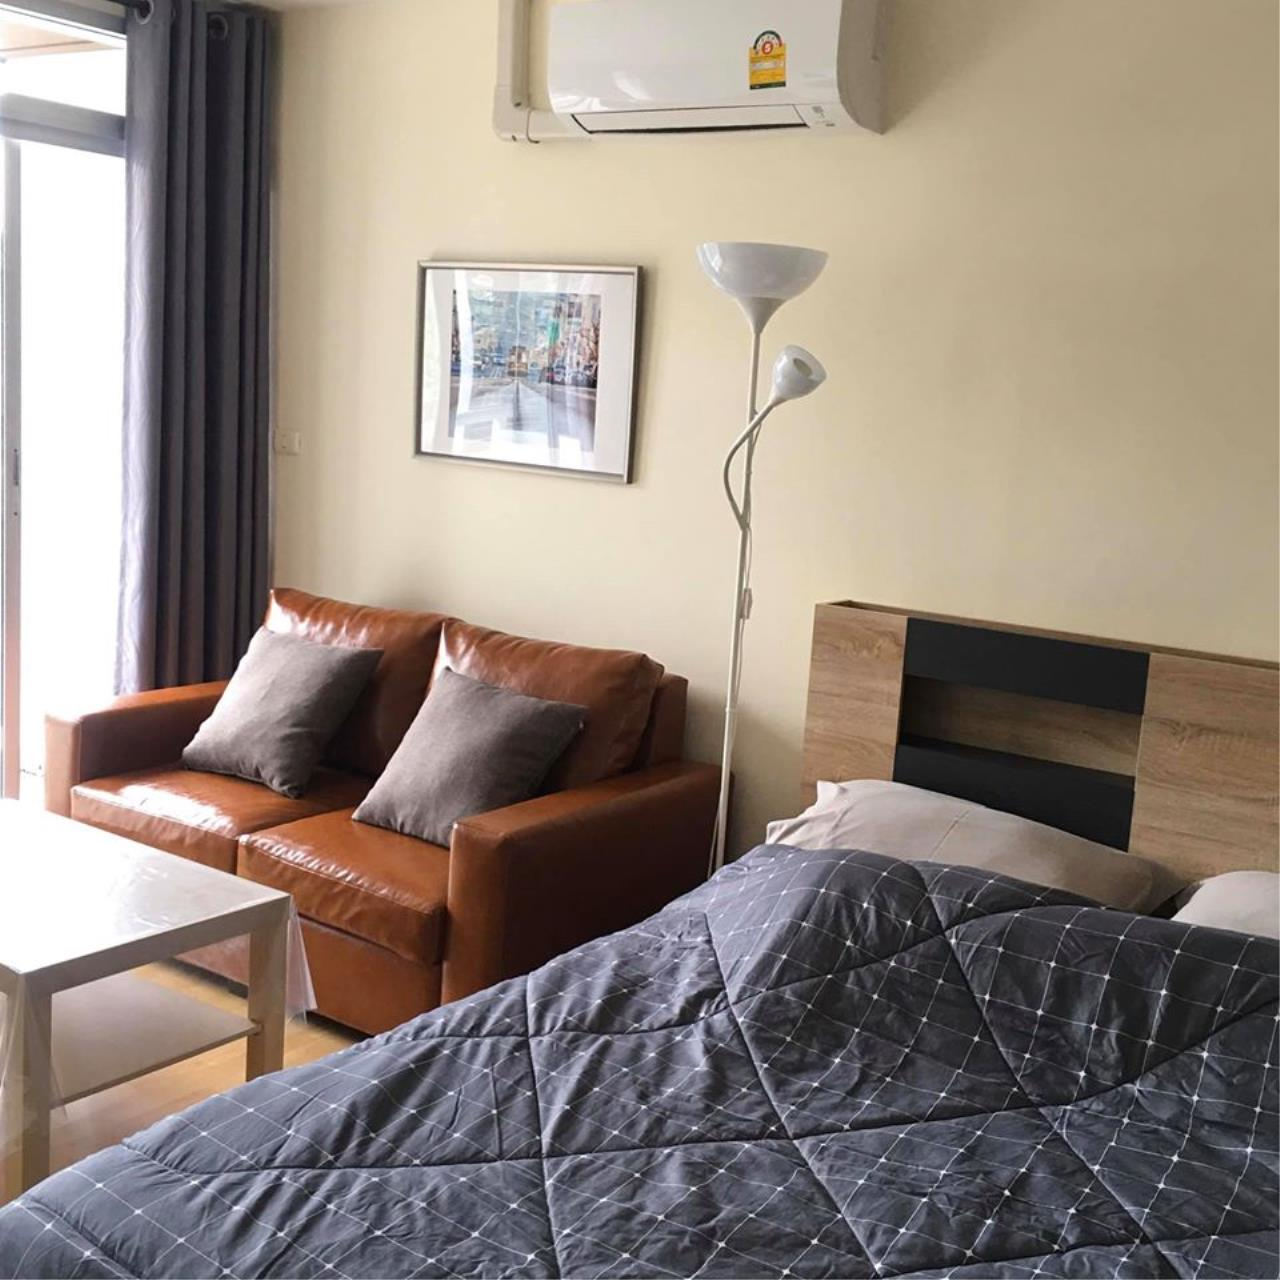 Agent Thawanrat Agency's Condo for rental THE LINK ADVANCE SUKHUMVIT 50 Near BTS. On Nut 1 bedroom,1 bathroom. size 31.5 sqm.Floor 2 nd. fully furnished Ready to move in 3